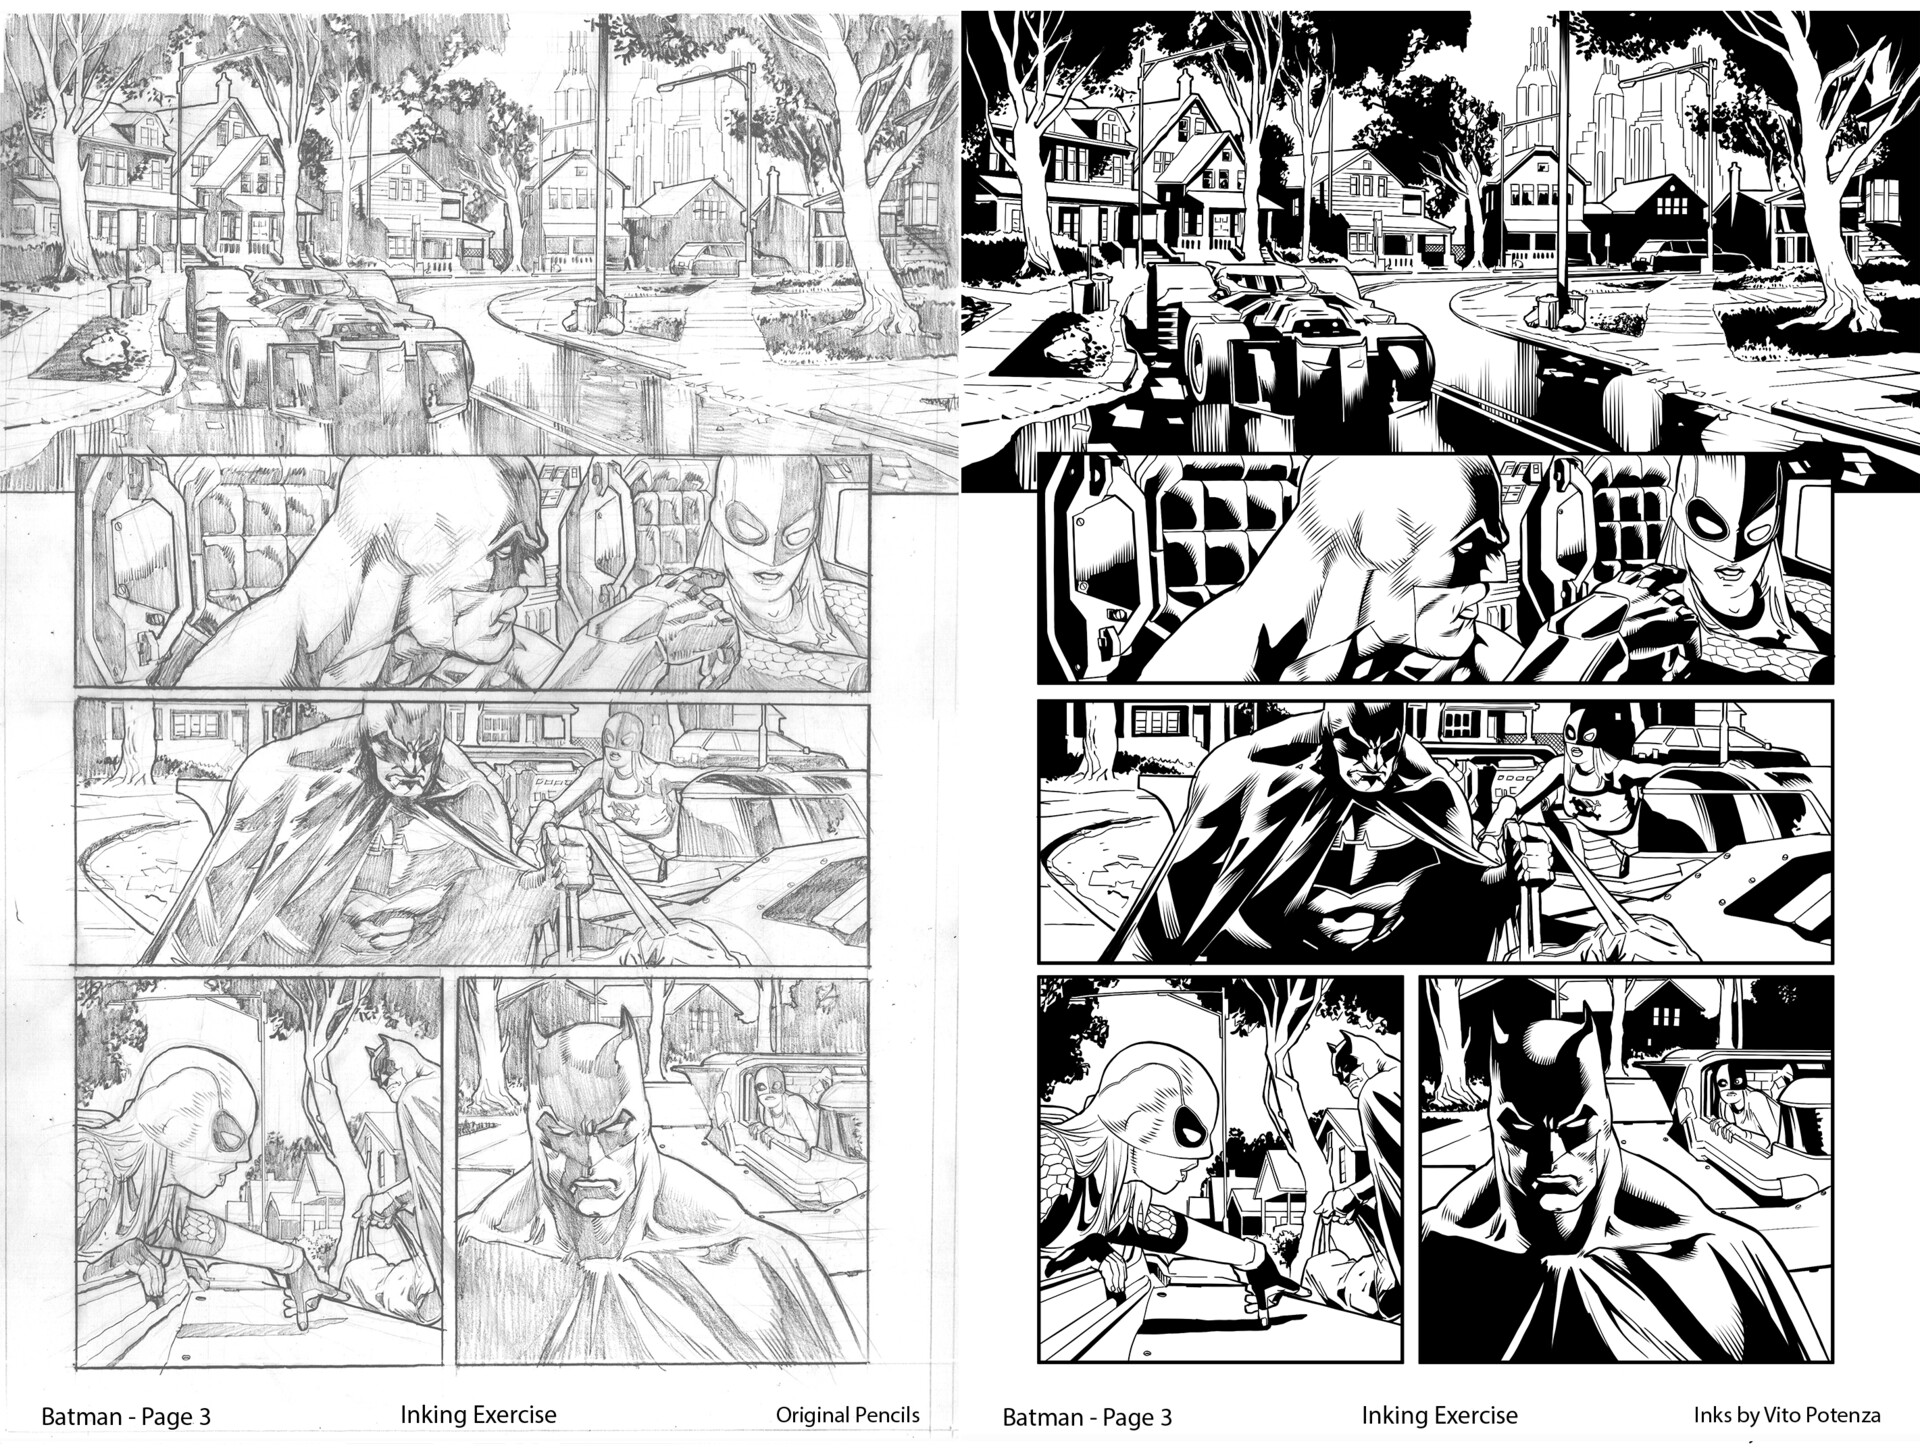 Batman Page 3 - Inked by me